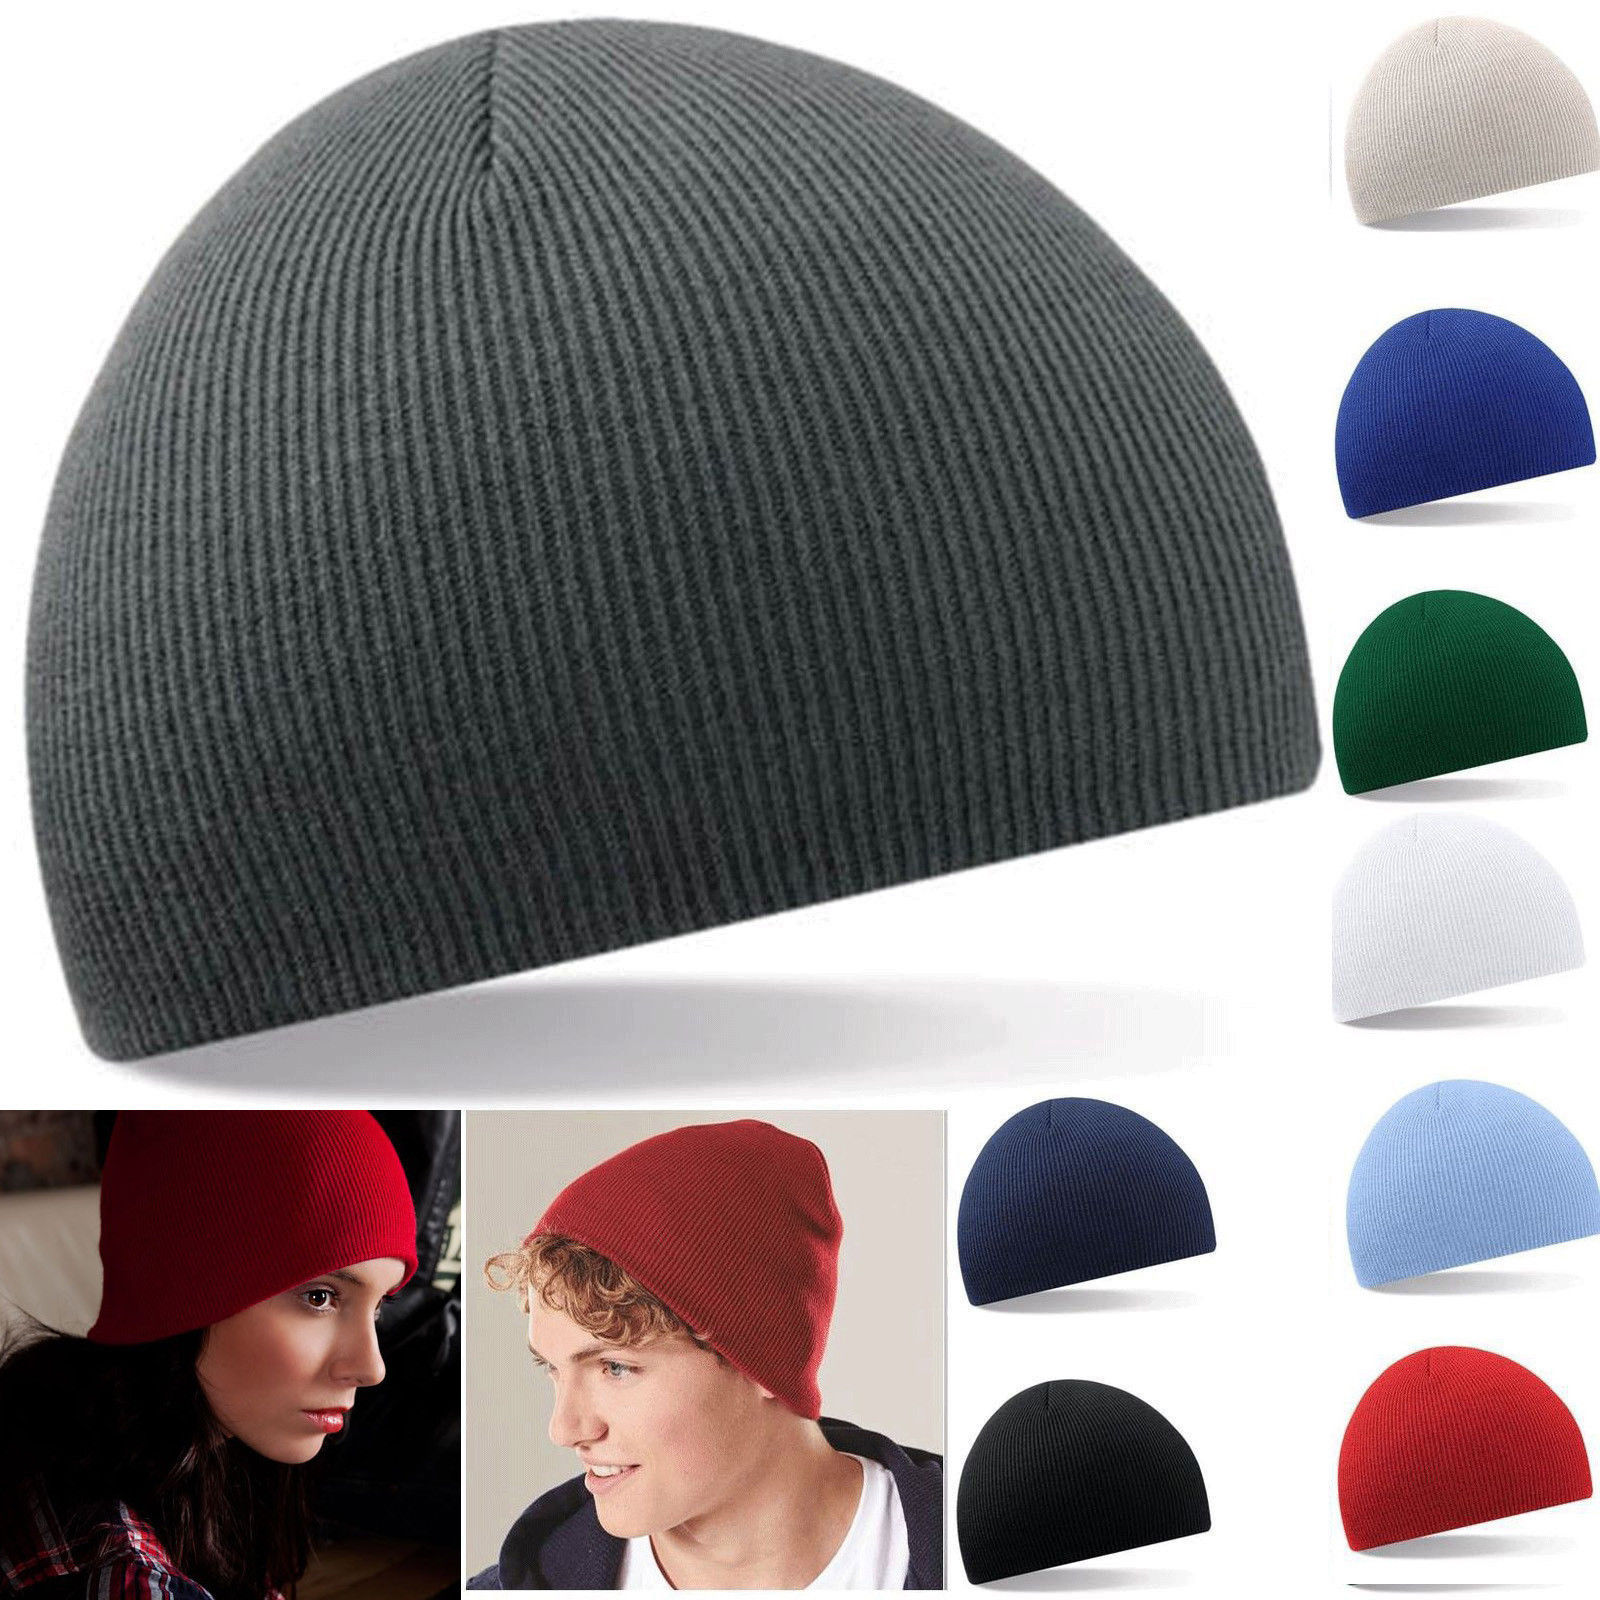 83cc3a23f9f29d Details about Beanie Plain Knit Ski Hat Skull Cap Cuff Warm Winter Blank  Colors Unisex Beany